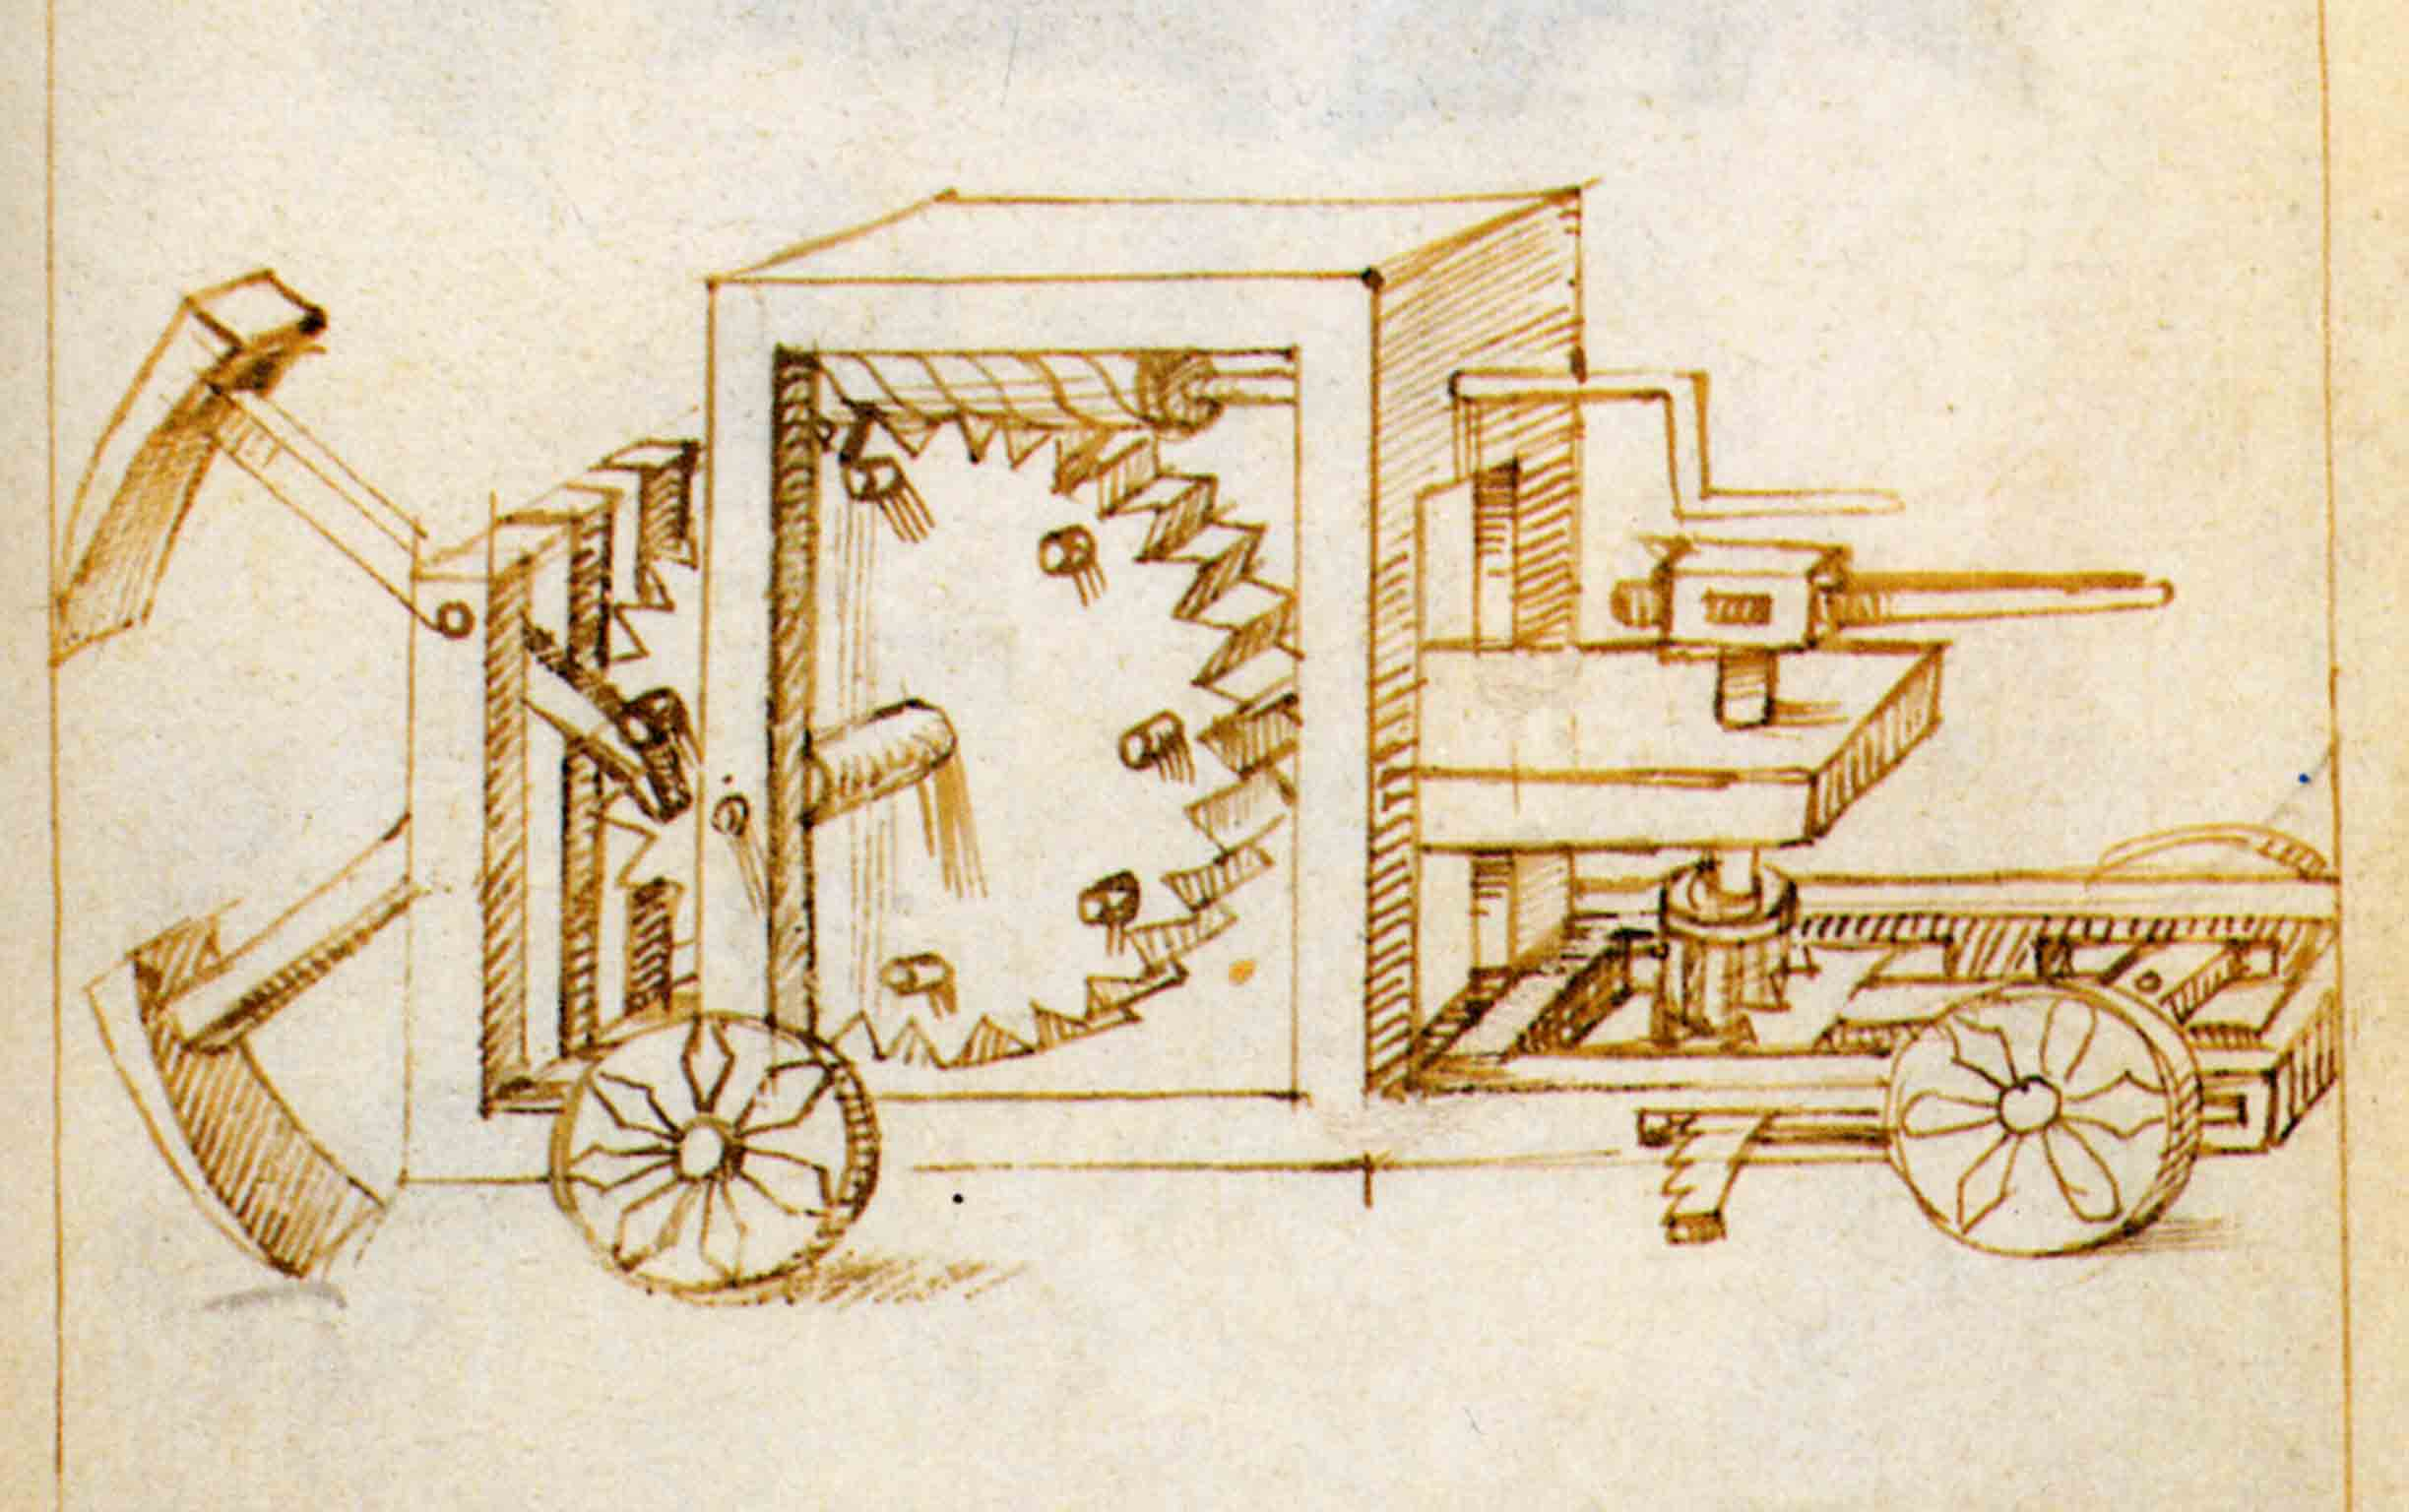 P. G. Molari, MACHINES AS THE PUREST EXPRESSION OF ENGINEERING AND FOUNDATIONS OF RENAISSANCE